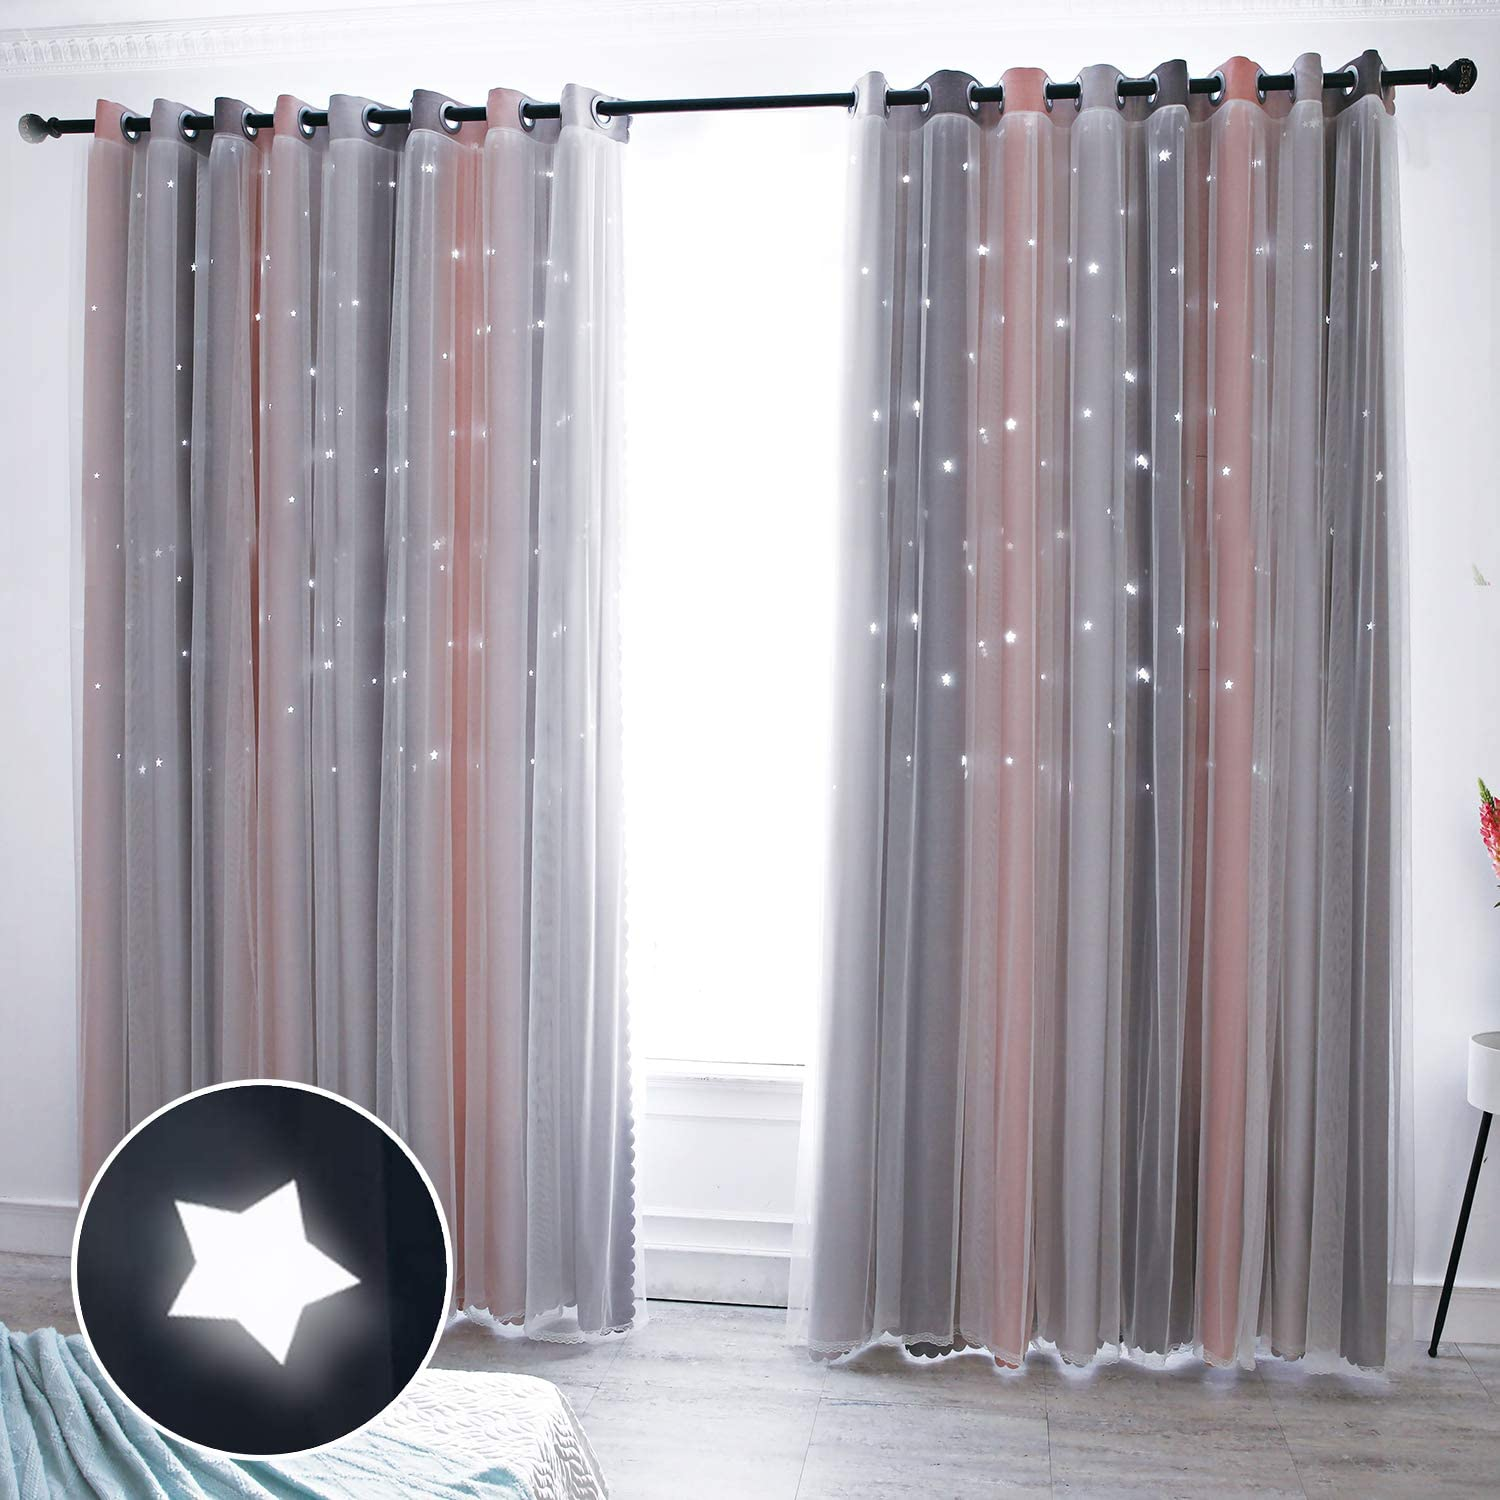 Hughapy Star Curtains Stars Blackout Curtains for Kids Girls Bedroom Living Room Colorful Double Layer Star Cut Out Stripe Window Curtains, 1 Panel -(52W x 84L, Pink/Grey)